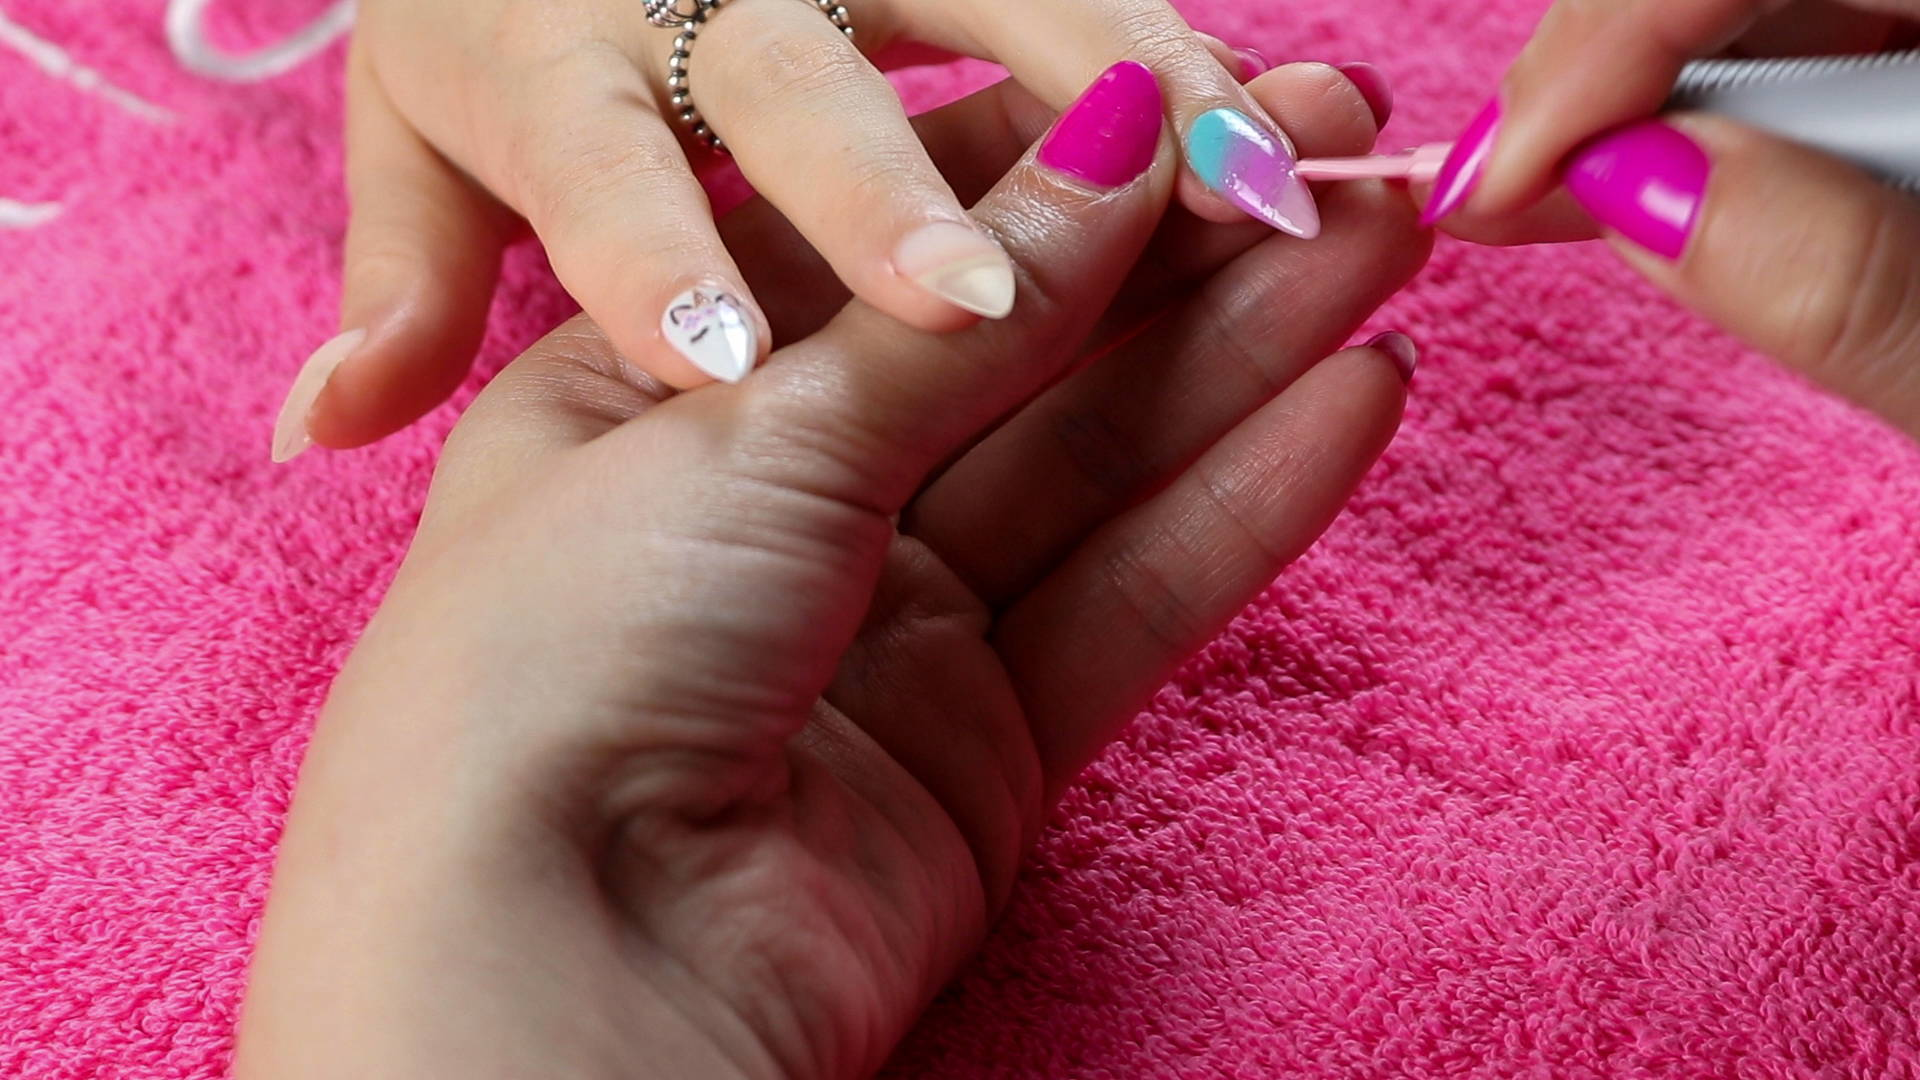 Unicorn nail art detail being painted onto a nail using ORLY GelFX Lift The Veil